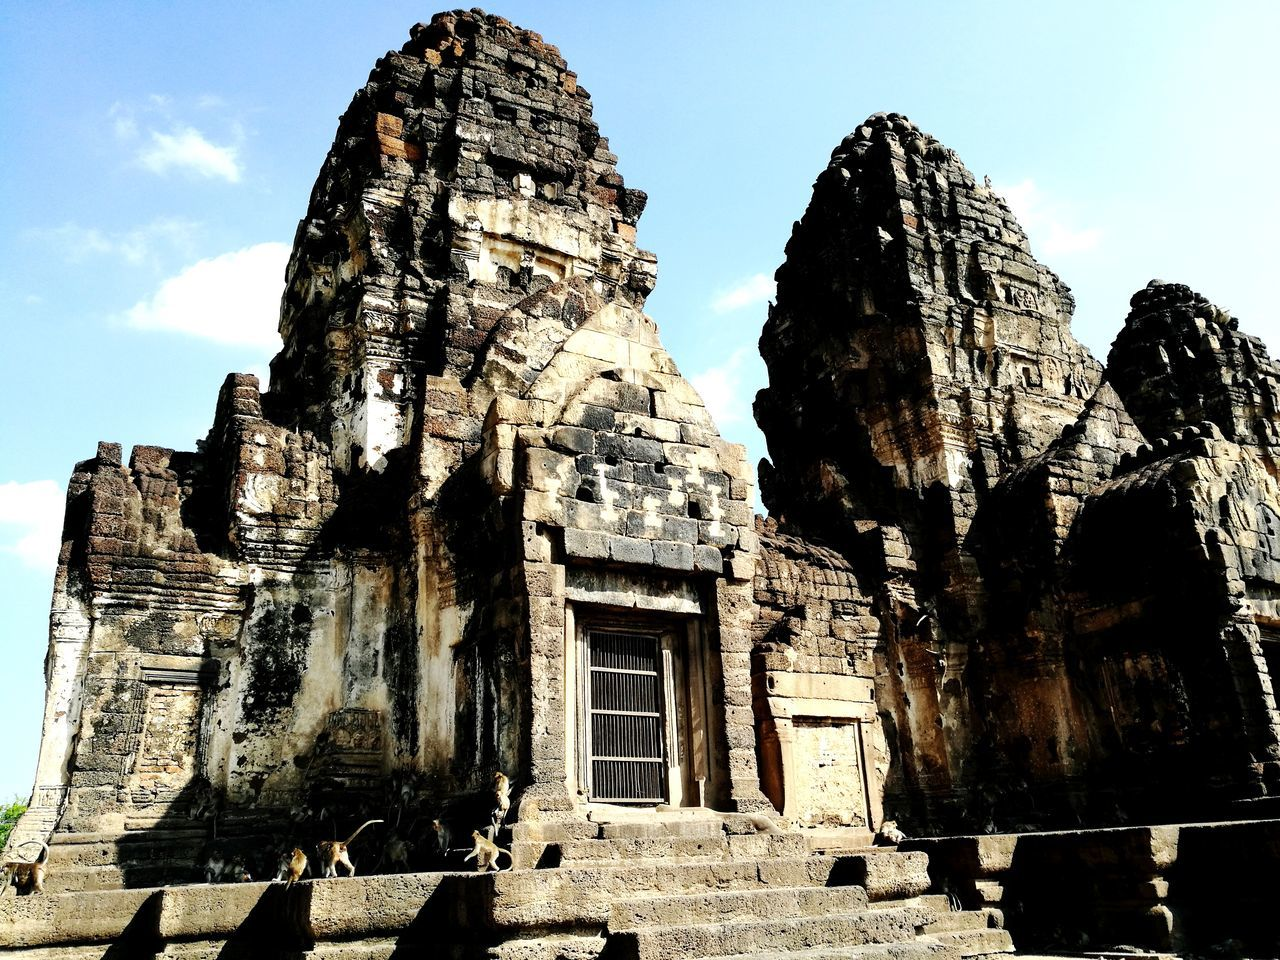 Place Of Worship Monkeys Monkey Temple Monkey City Travel Old Ruin Ancient Architecture Outdoors Thailand Travel Destinations History Temple Sacred